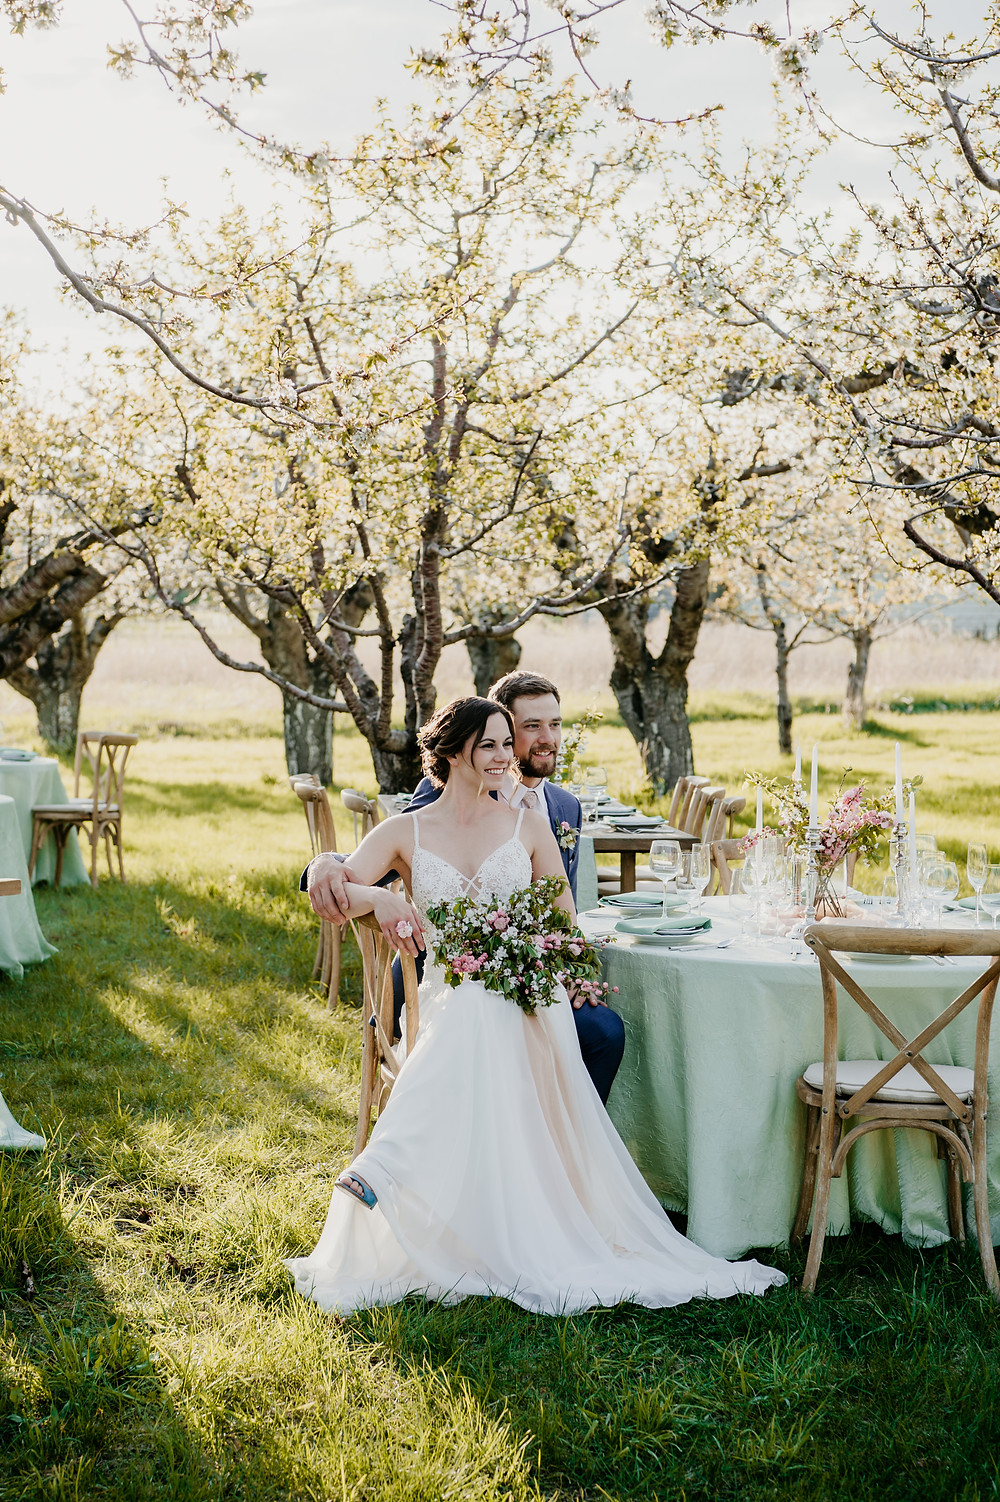 wedding photography tips for brides, how to make my reception look amazing